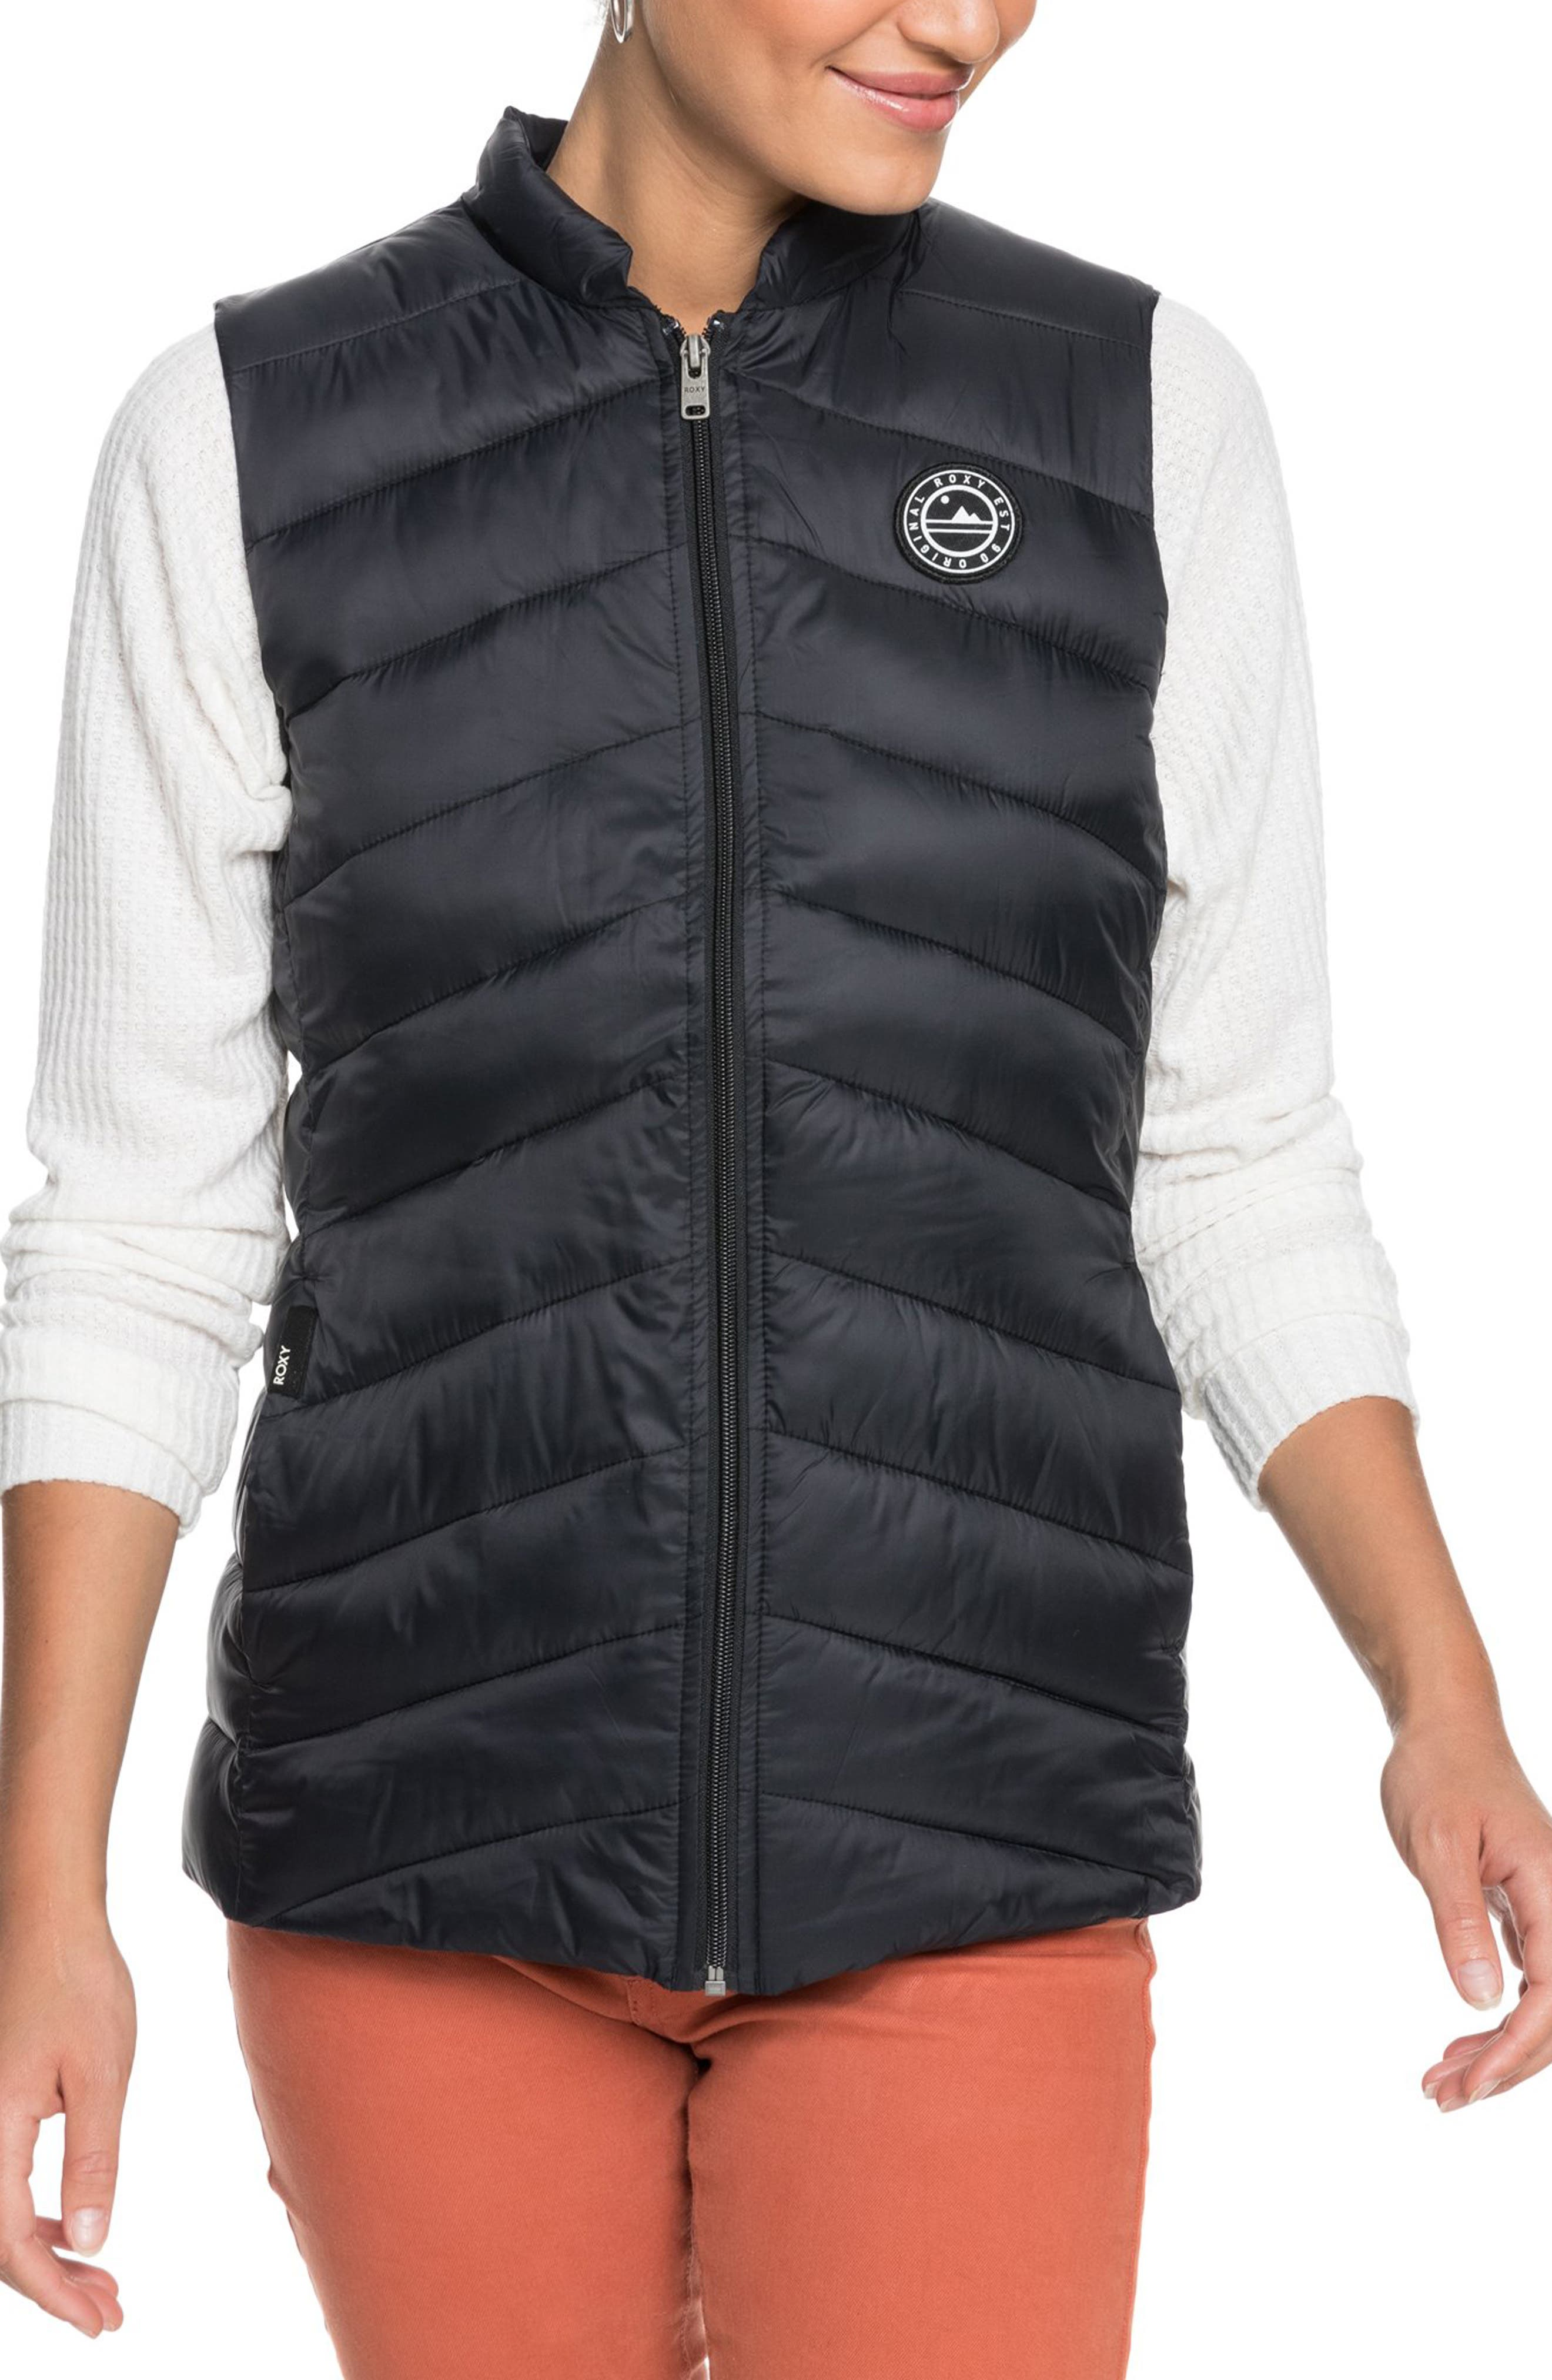 French Neck Vest FREE DELIVERY Long